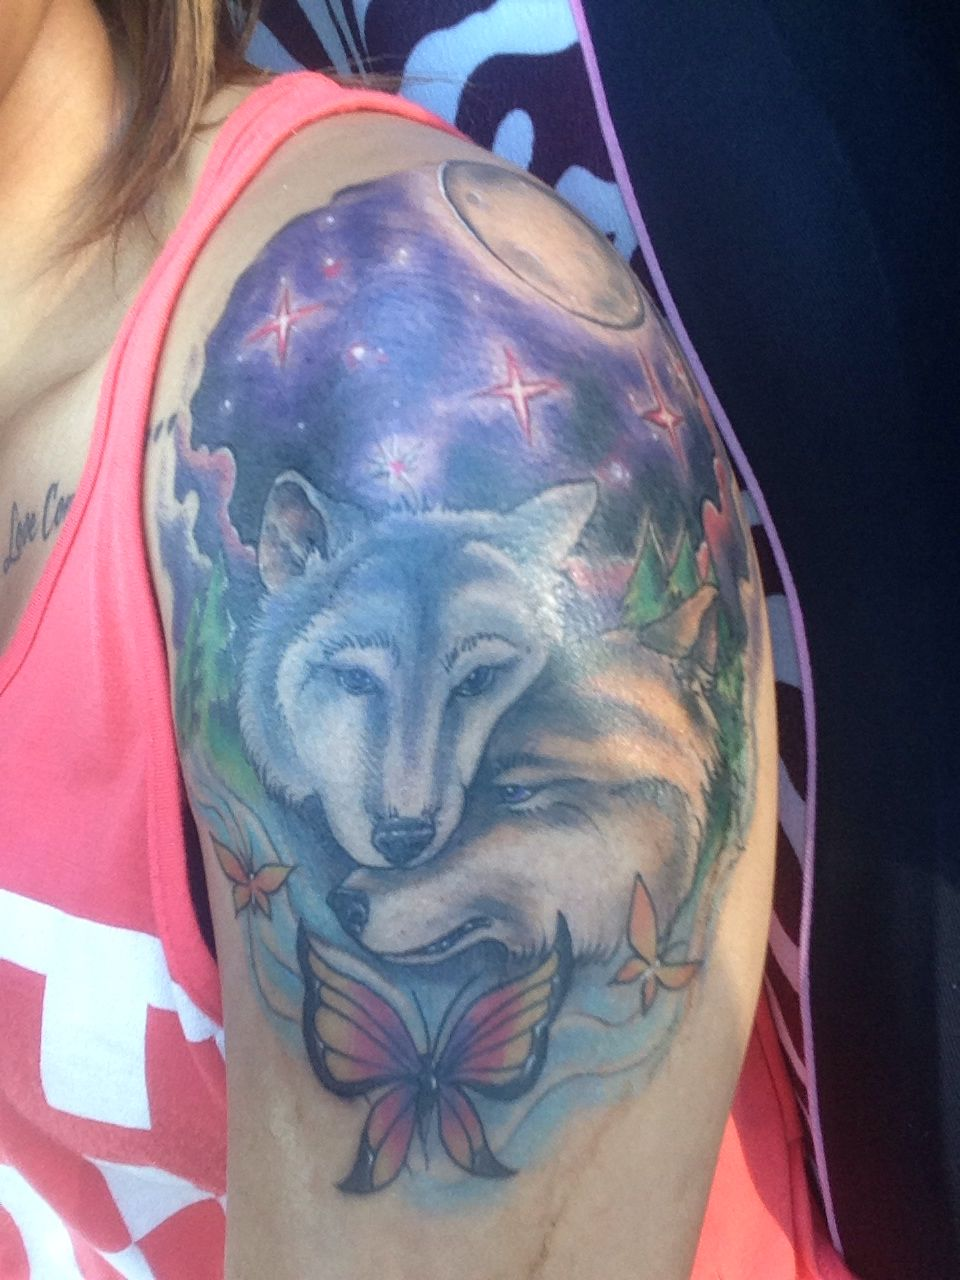 Lupus tattoo for my mom canis lupus gray wolf butterflies lupus lupus tattoo for my mom canis lupus gray wolf butterflies lupus symbol and a majority of the tattoo is colored purple including the wolves eyes biocorpaavc Image collections